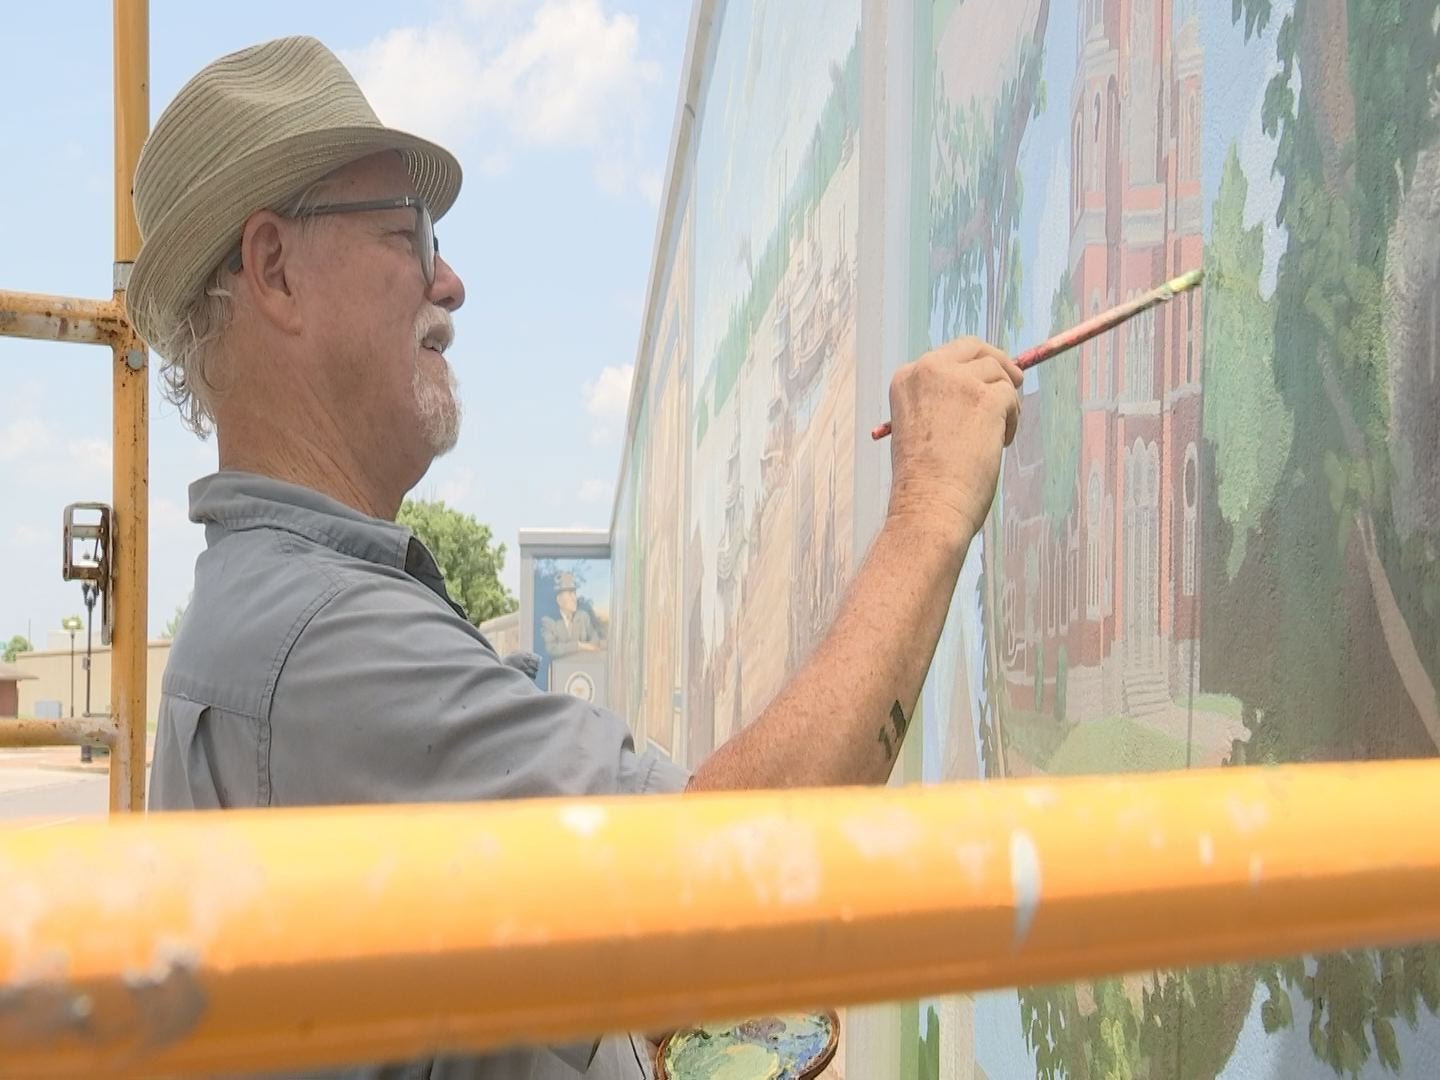 Artists are restoring and redoing murals in downtown Paducah.